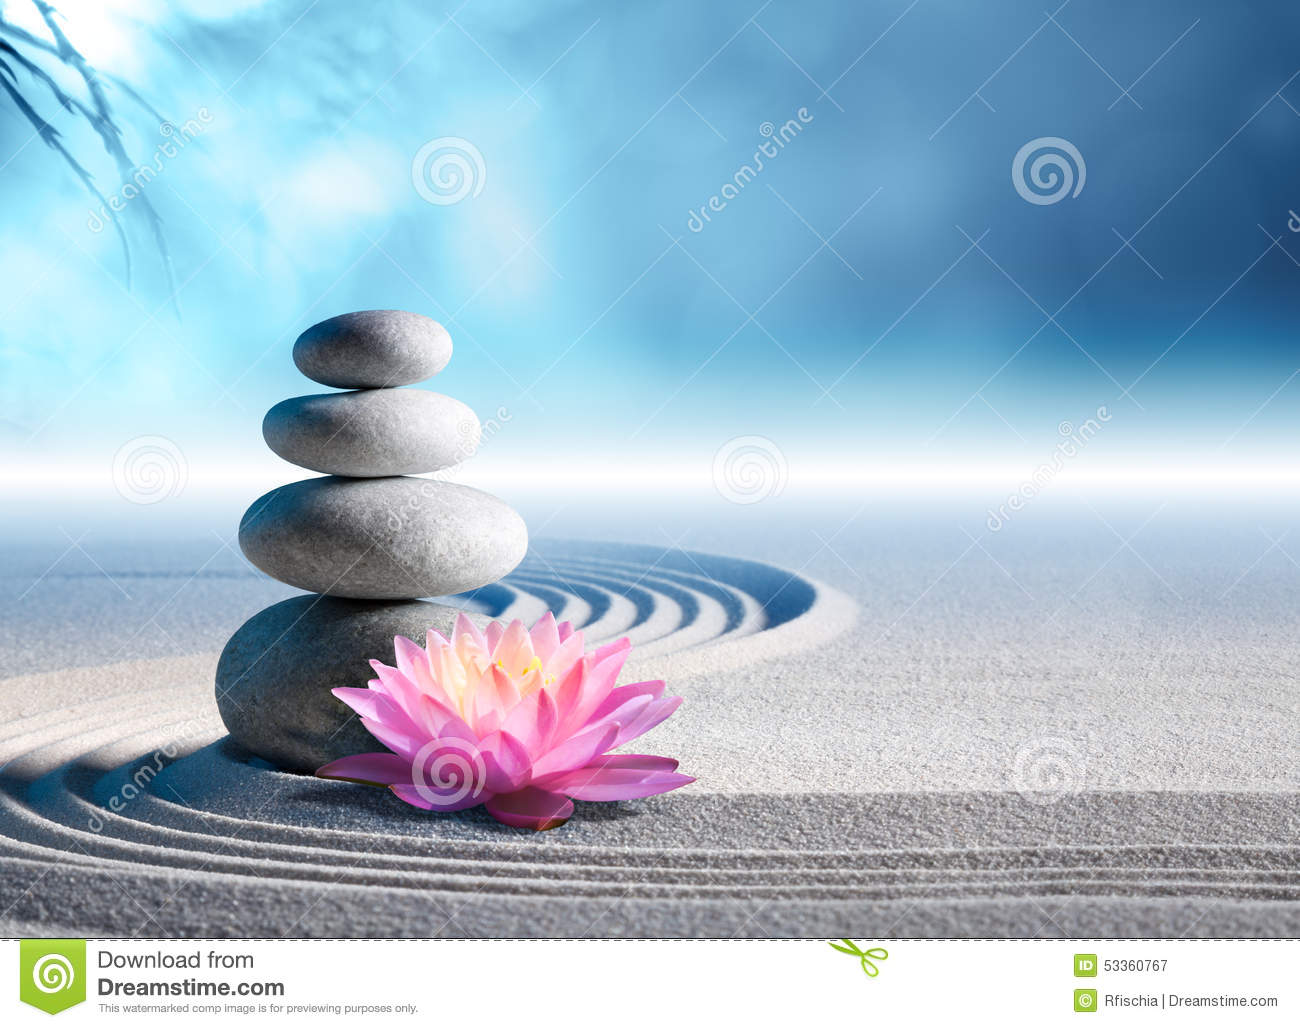 Sand, lily and spa stones